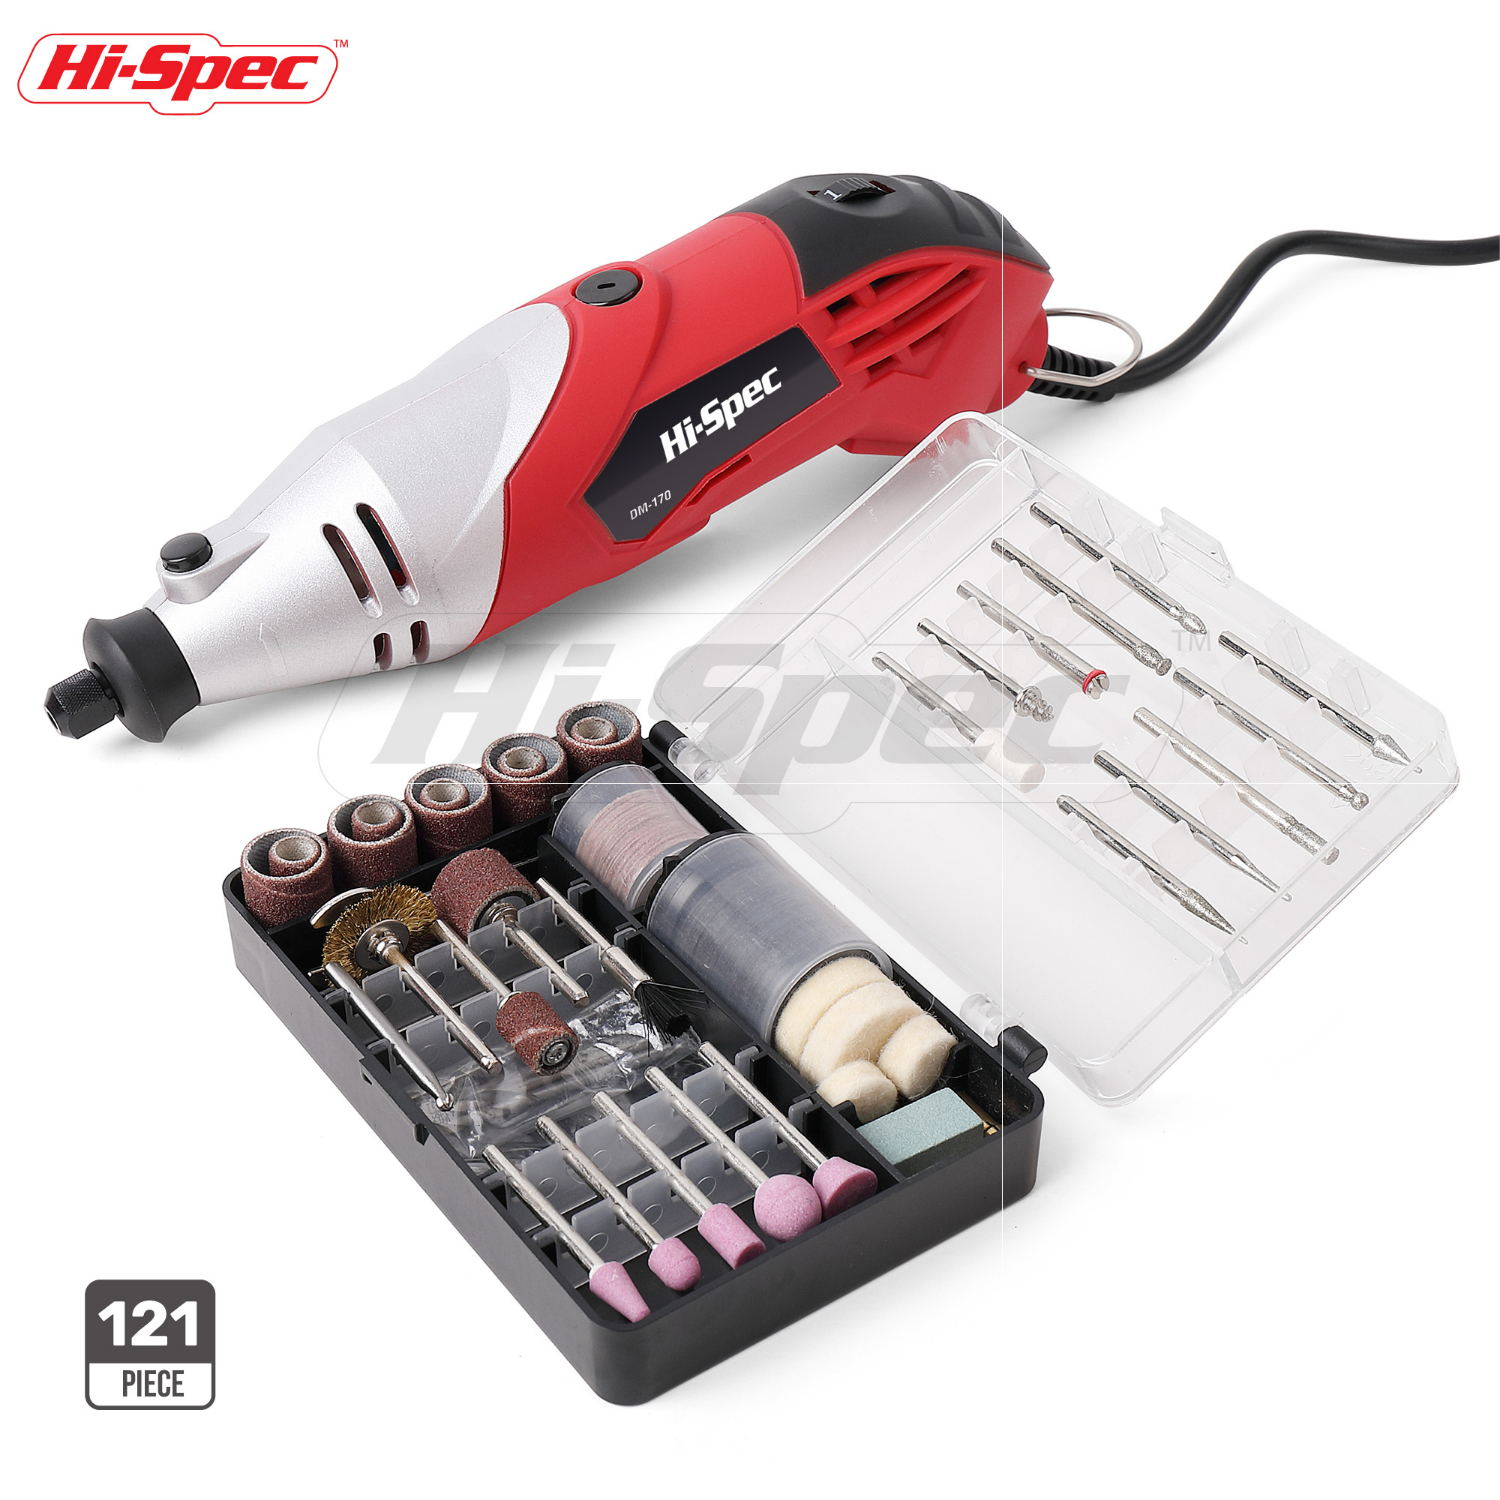 Hi-Spec 120pc 170W Power Tool Electric Drill Variable Speed Rotary Tool for Cutting, Crafting, Sander, Grinder, Engraver, DREMEL